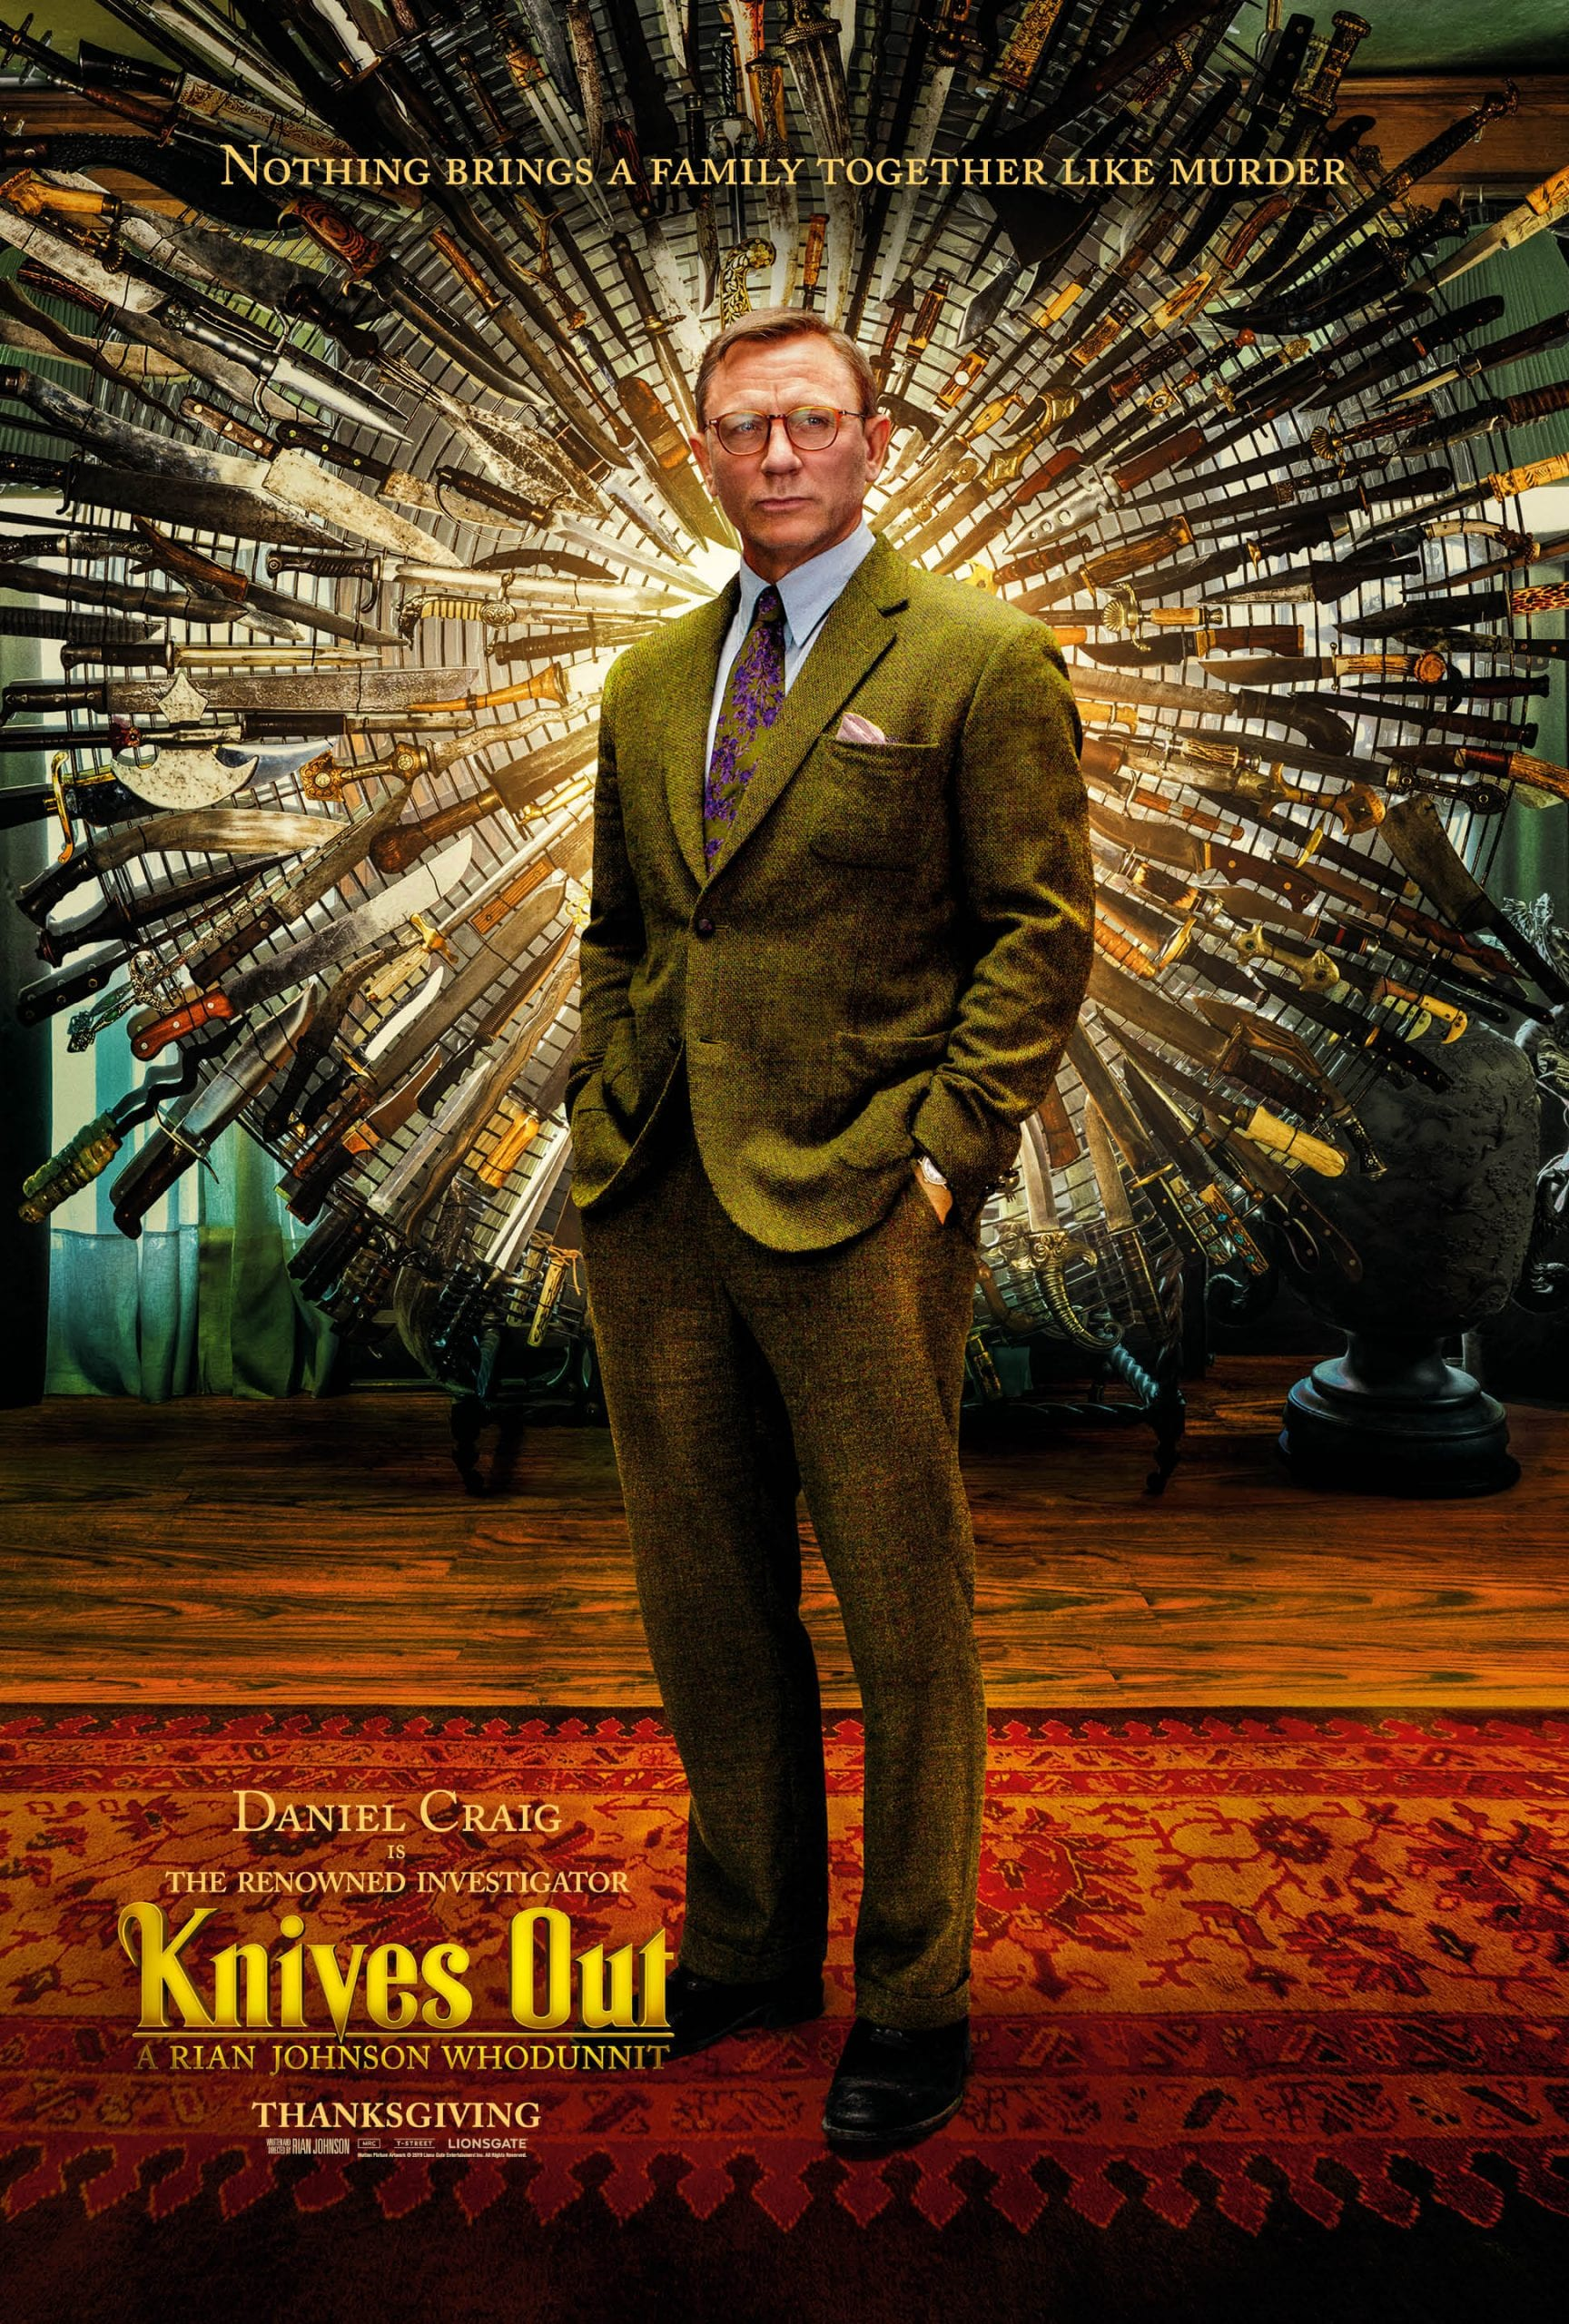 Knives Out Character Posters Daniel Craig as Benoit Blanc